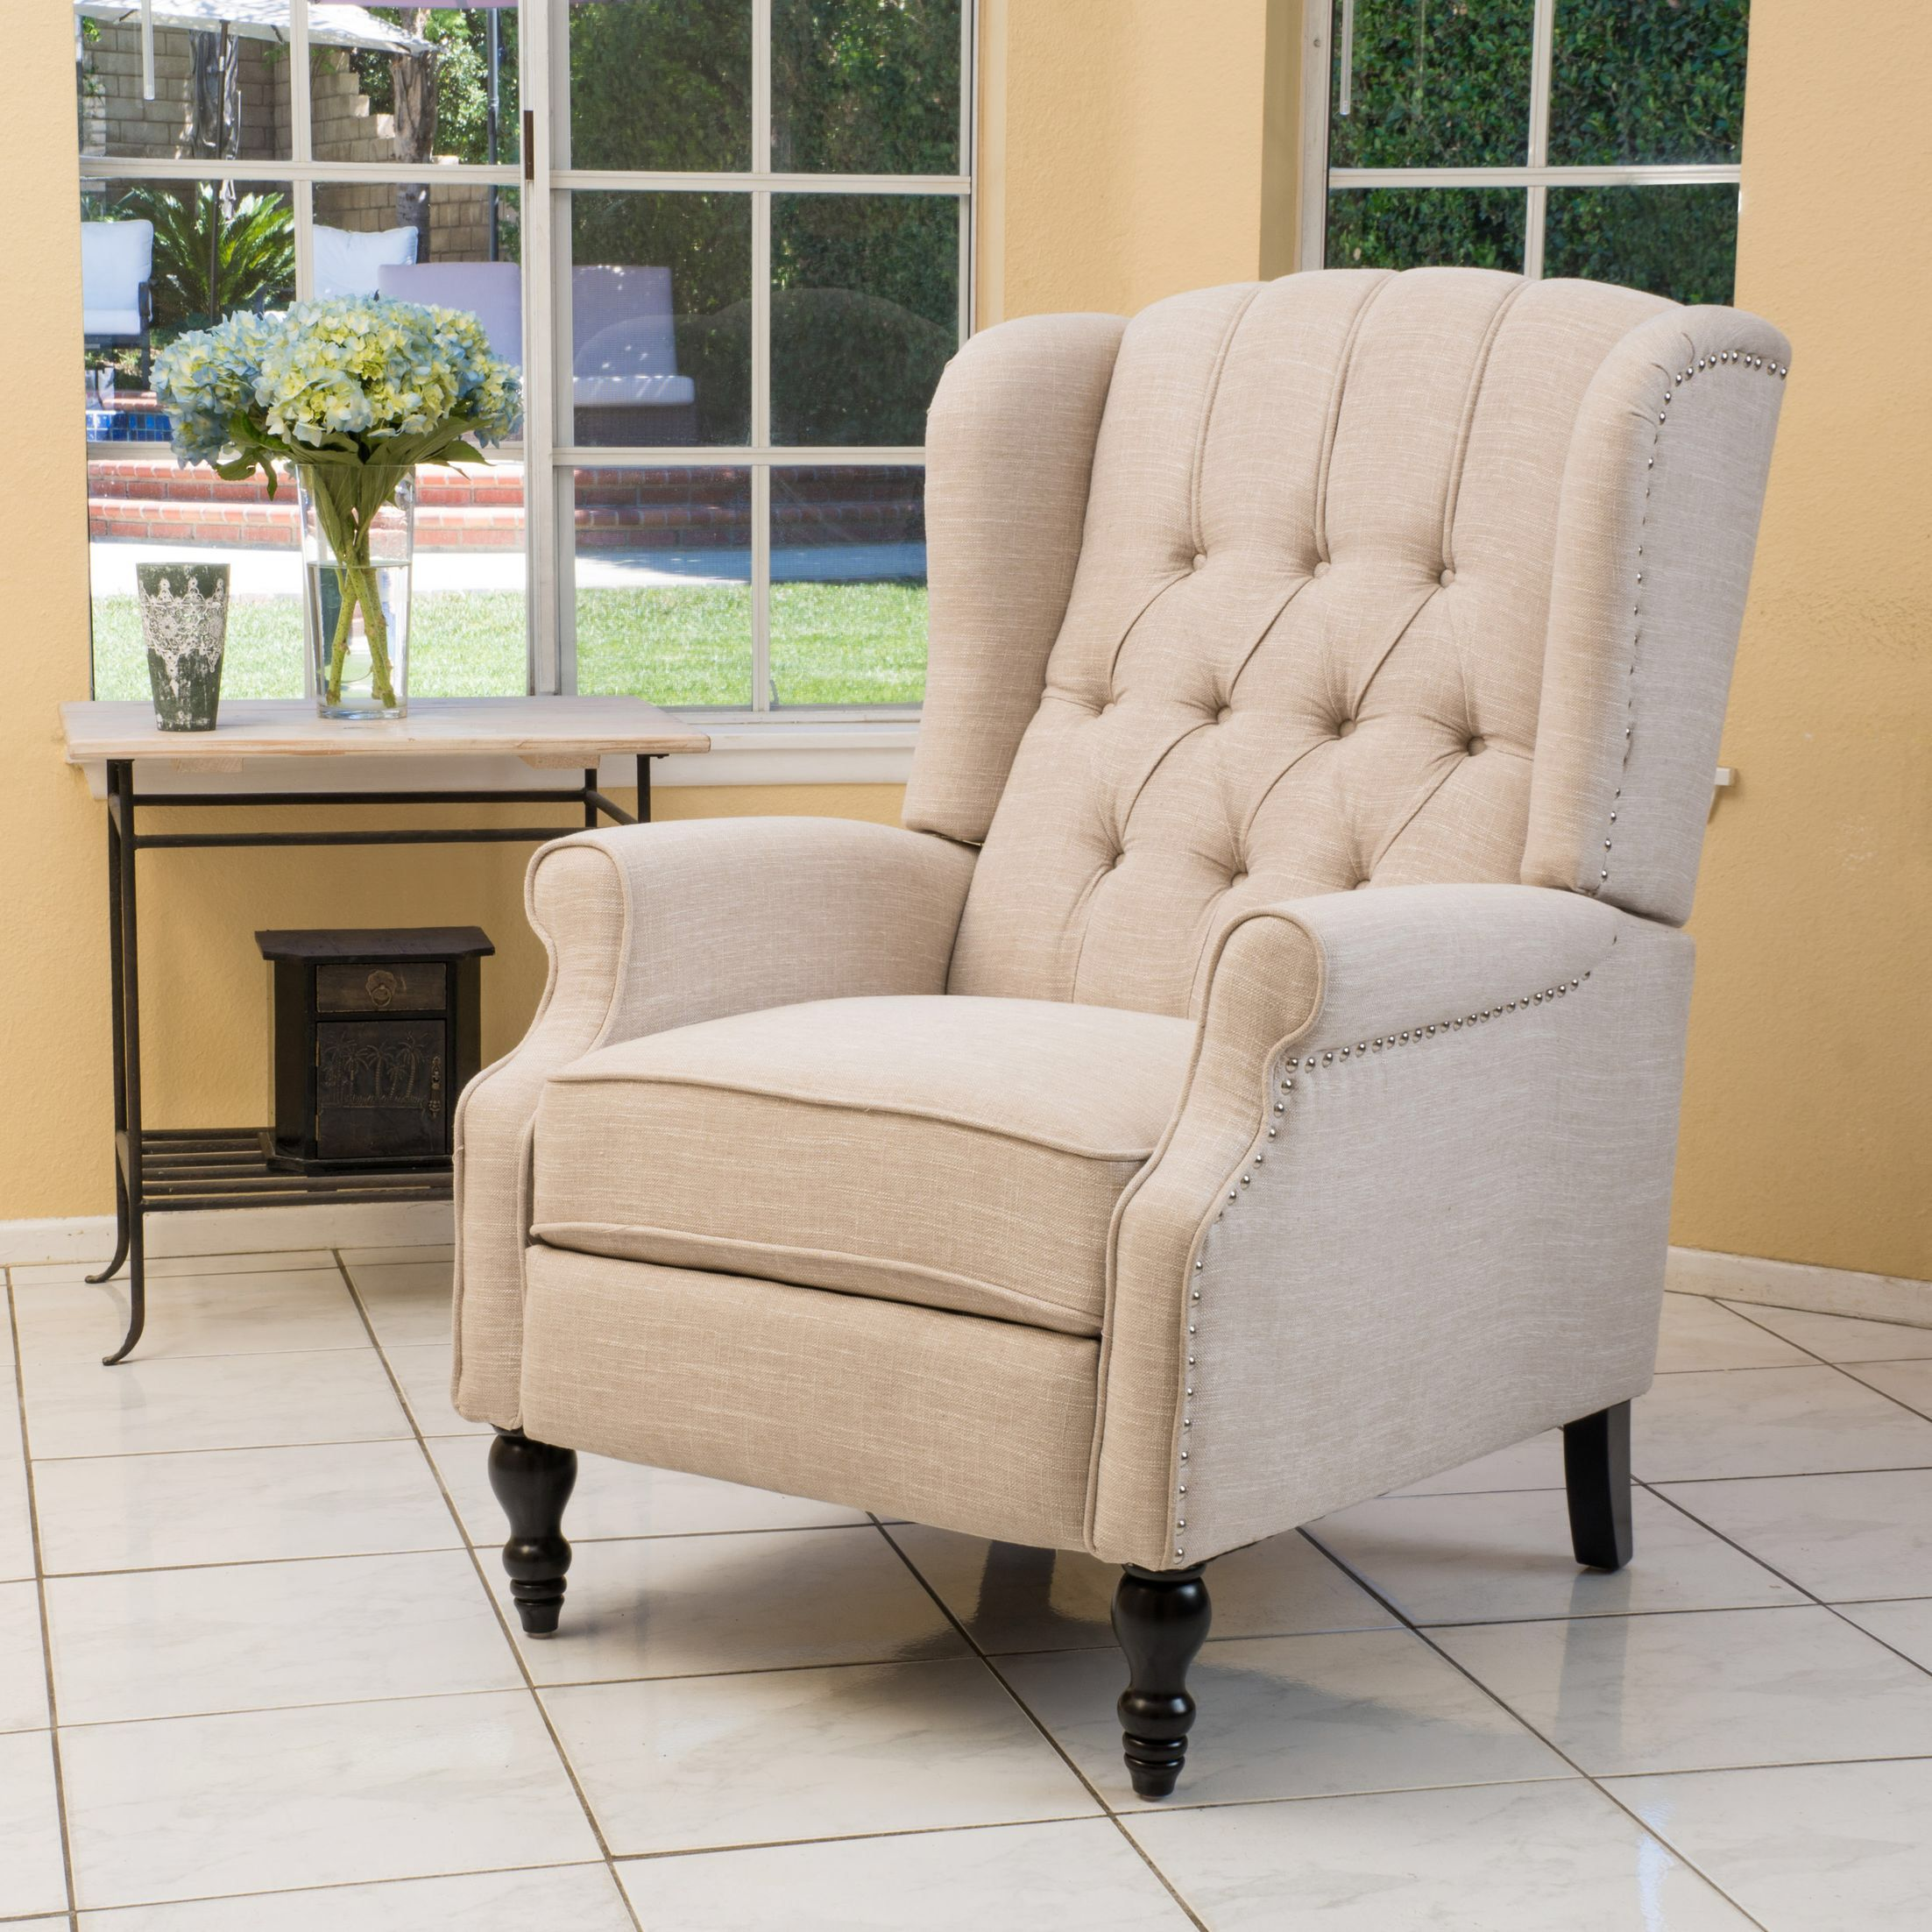 Simon Recliner | Living room chairs, Furniture, Fabric ...